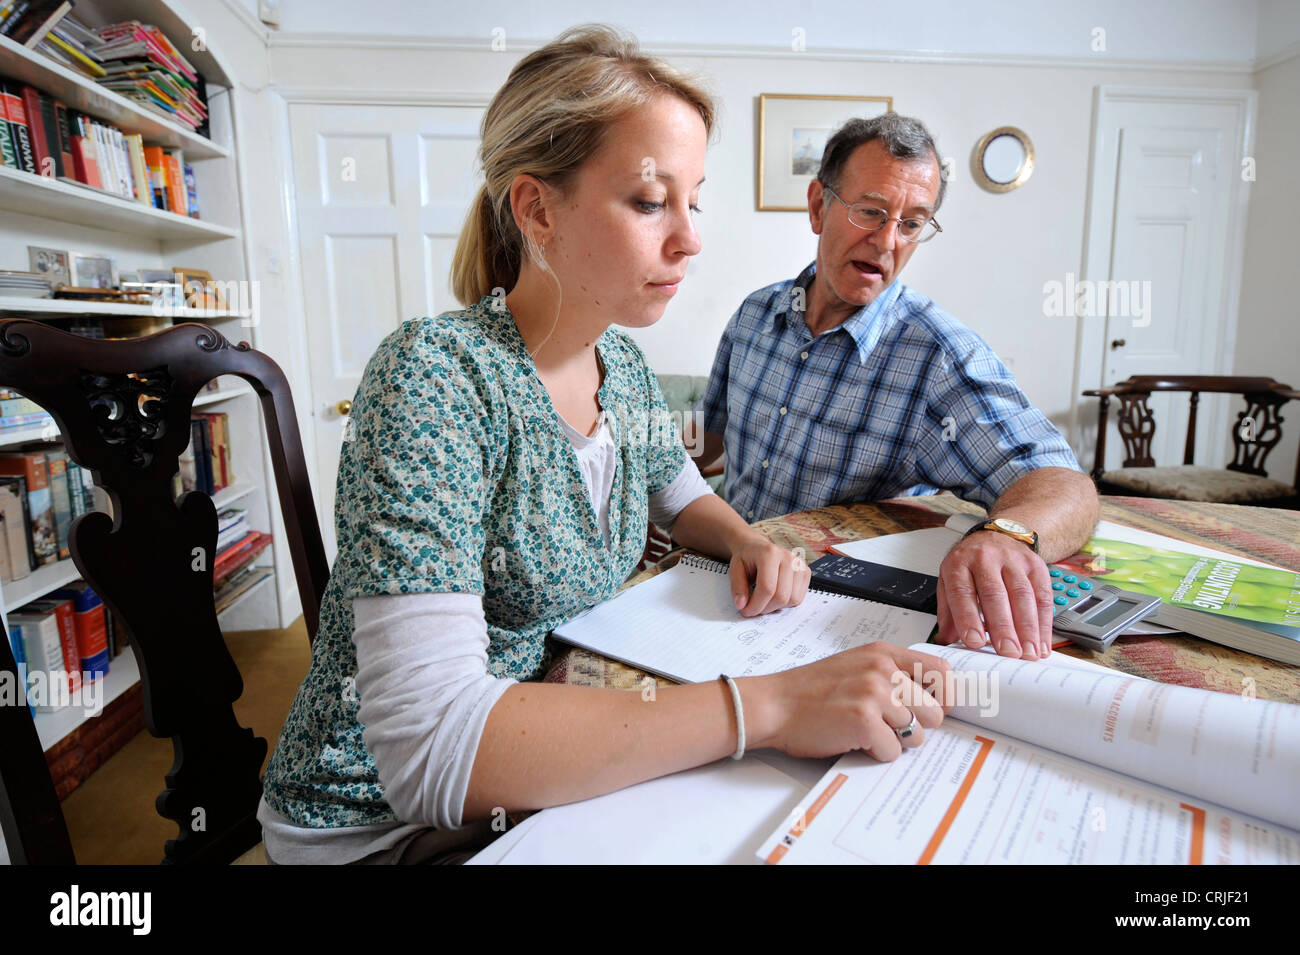 Private Tutor Stock Photos & Private Tutor Stock Images - Alamy